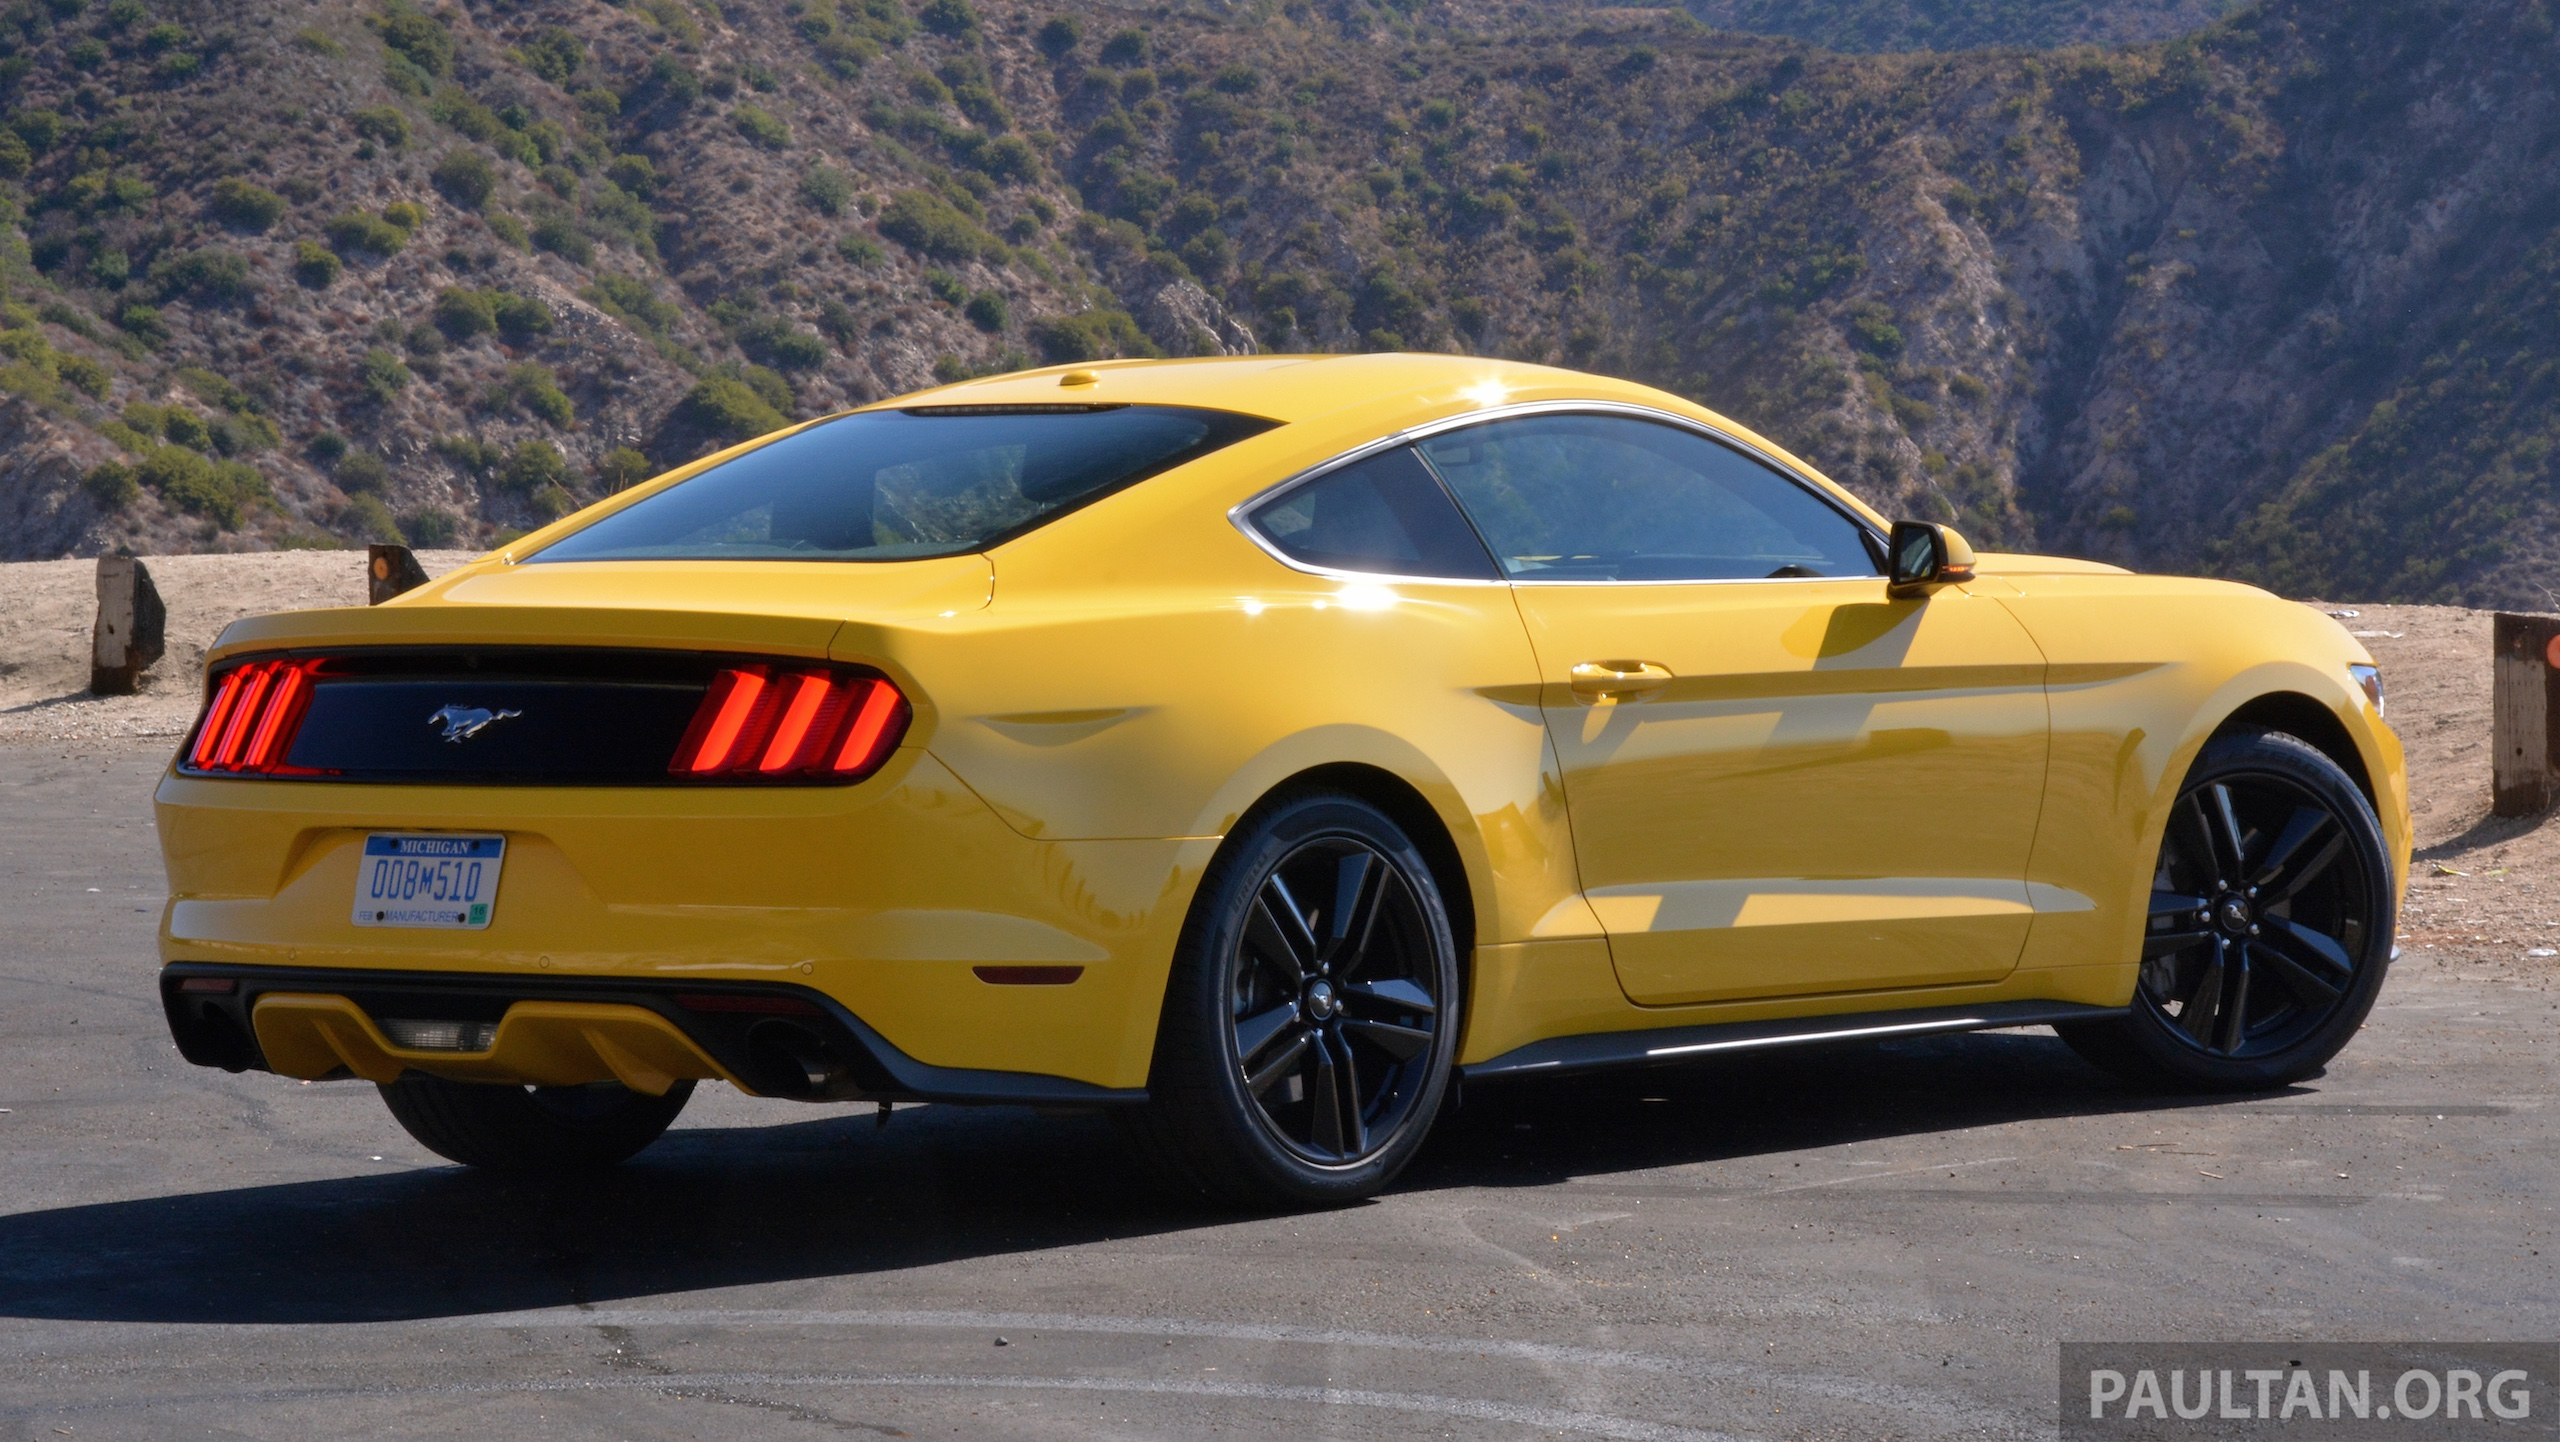 driven 2015 ford mustang 2 3 ecoboost and 5 0 gt paul tan image 310070. Black Bedroom Furniture Sets. Home Design Ideas